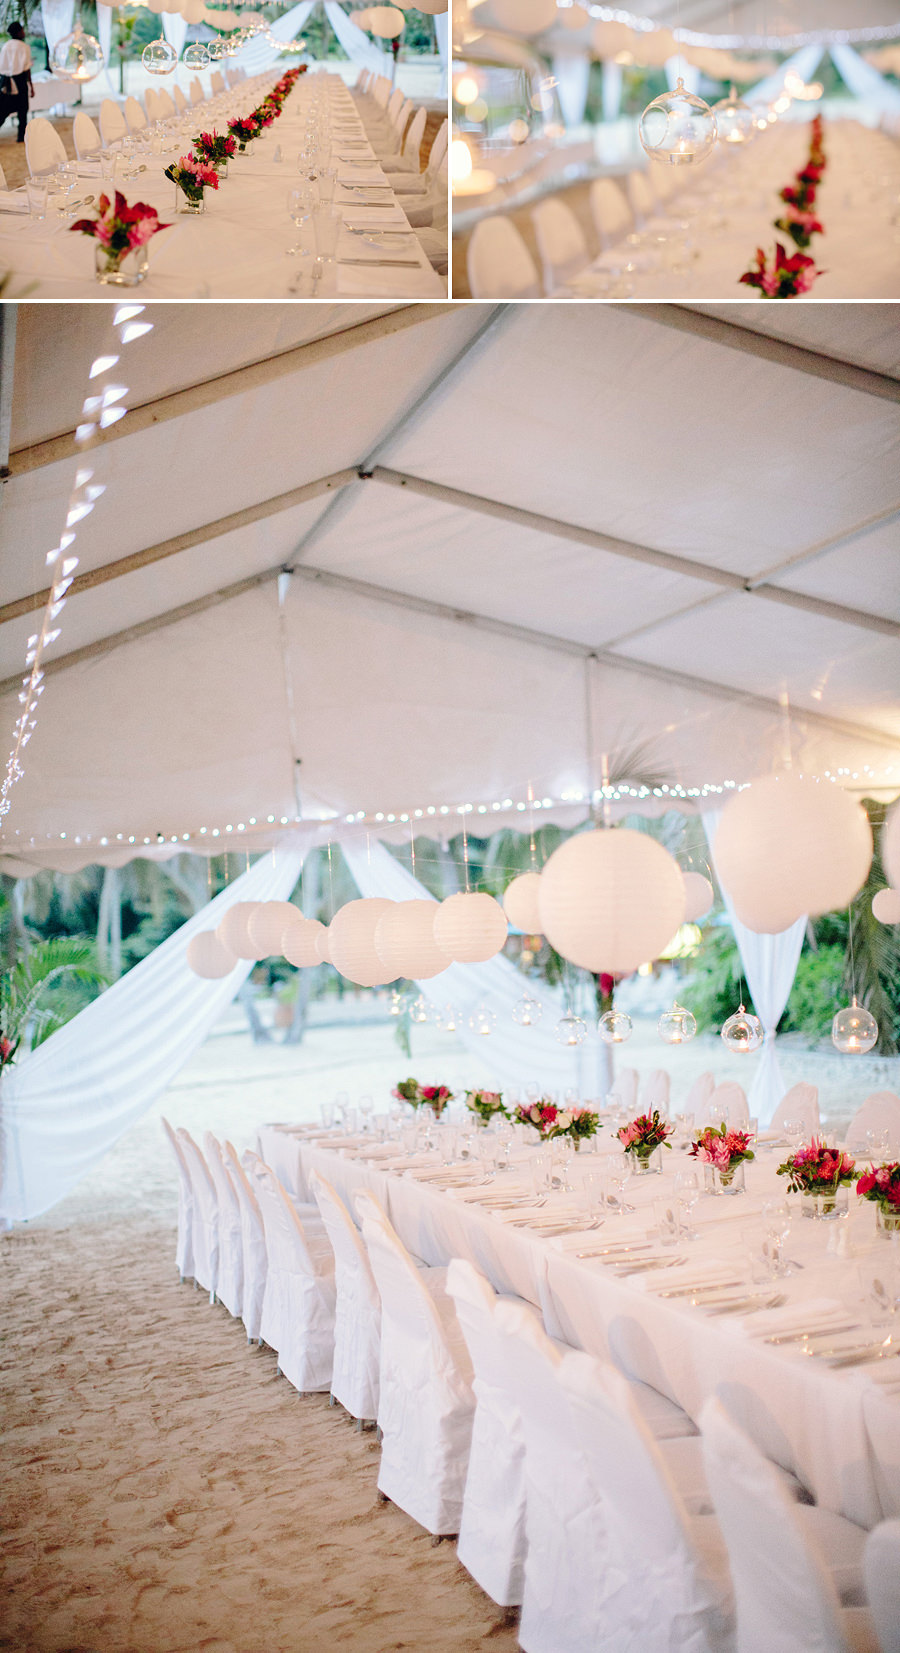 Beach Wedding Photographer: Lanterns hanging from ceiling